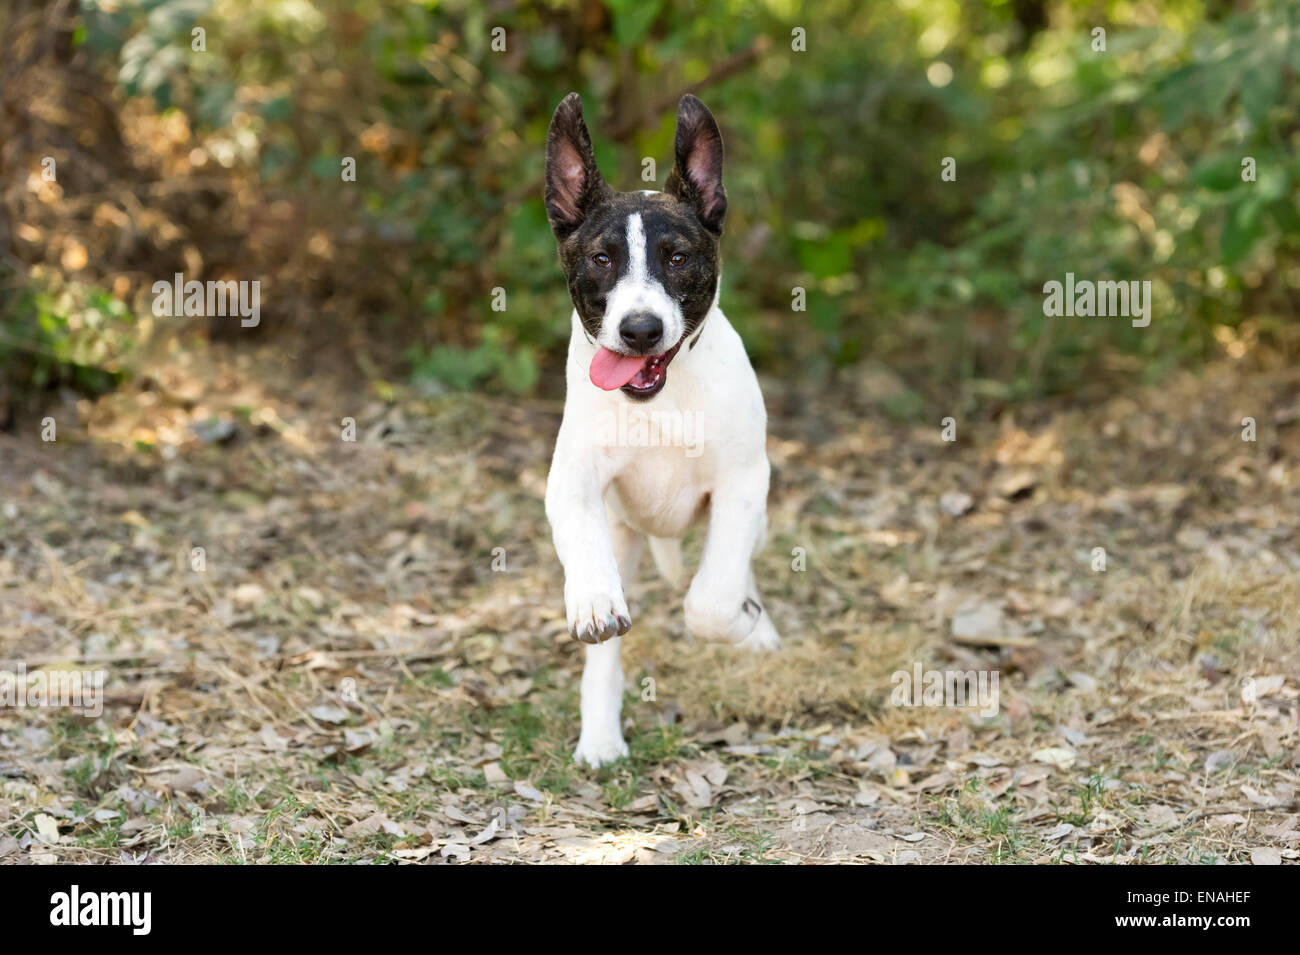 A Happy excited young dog is running and jumping outdoors with his tongue hanging out. - Stock Image